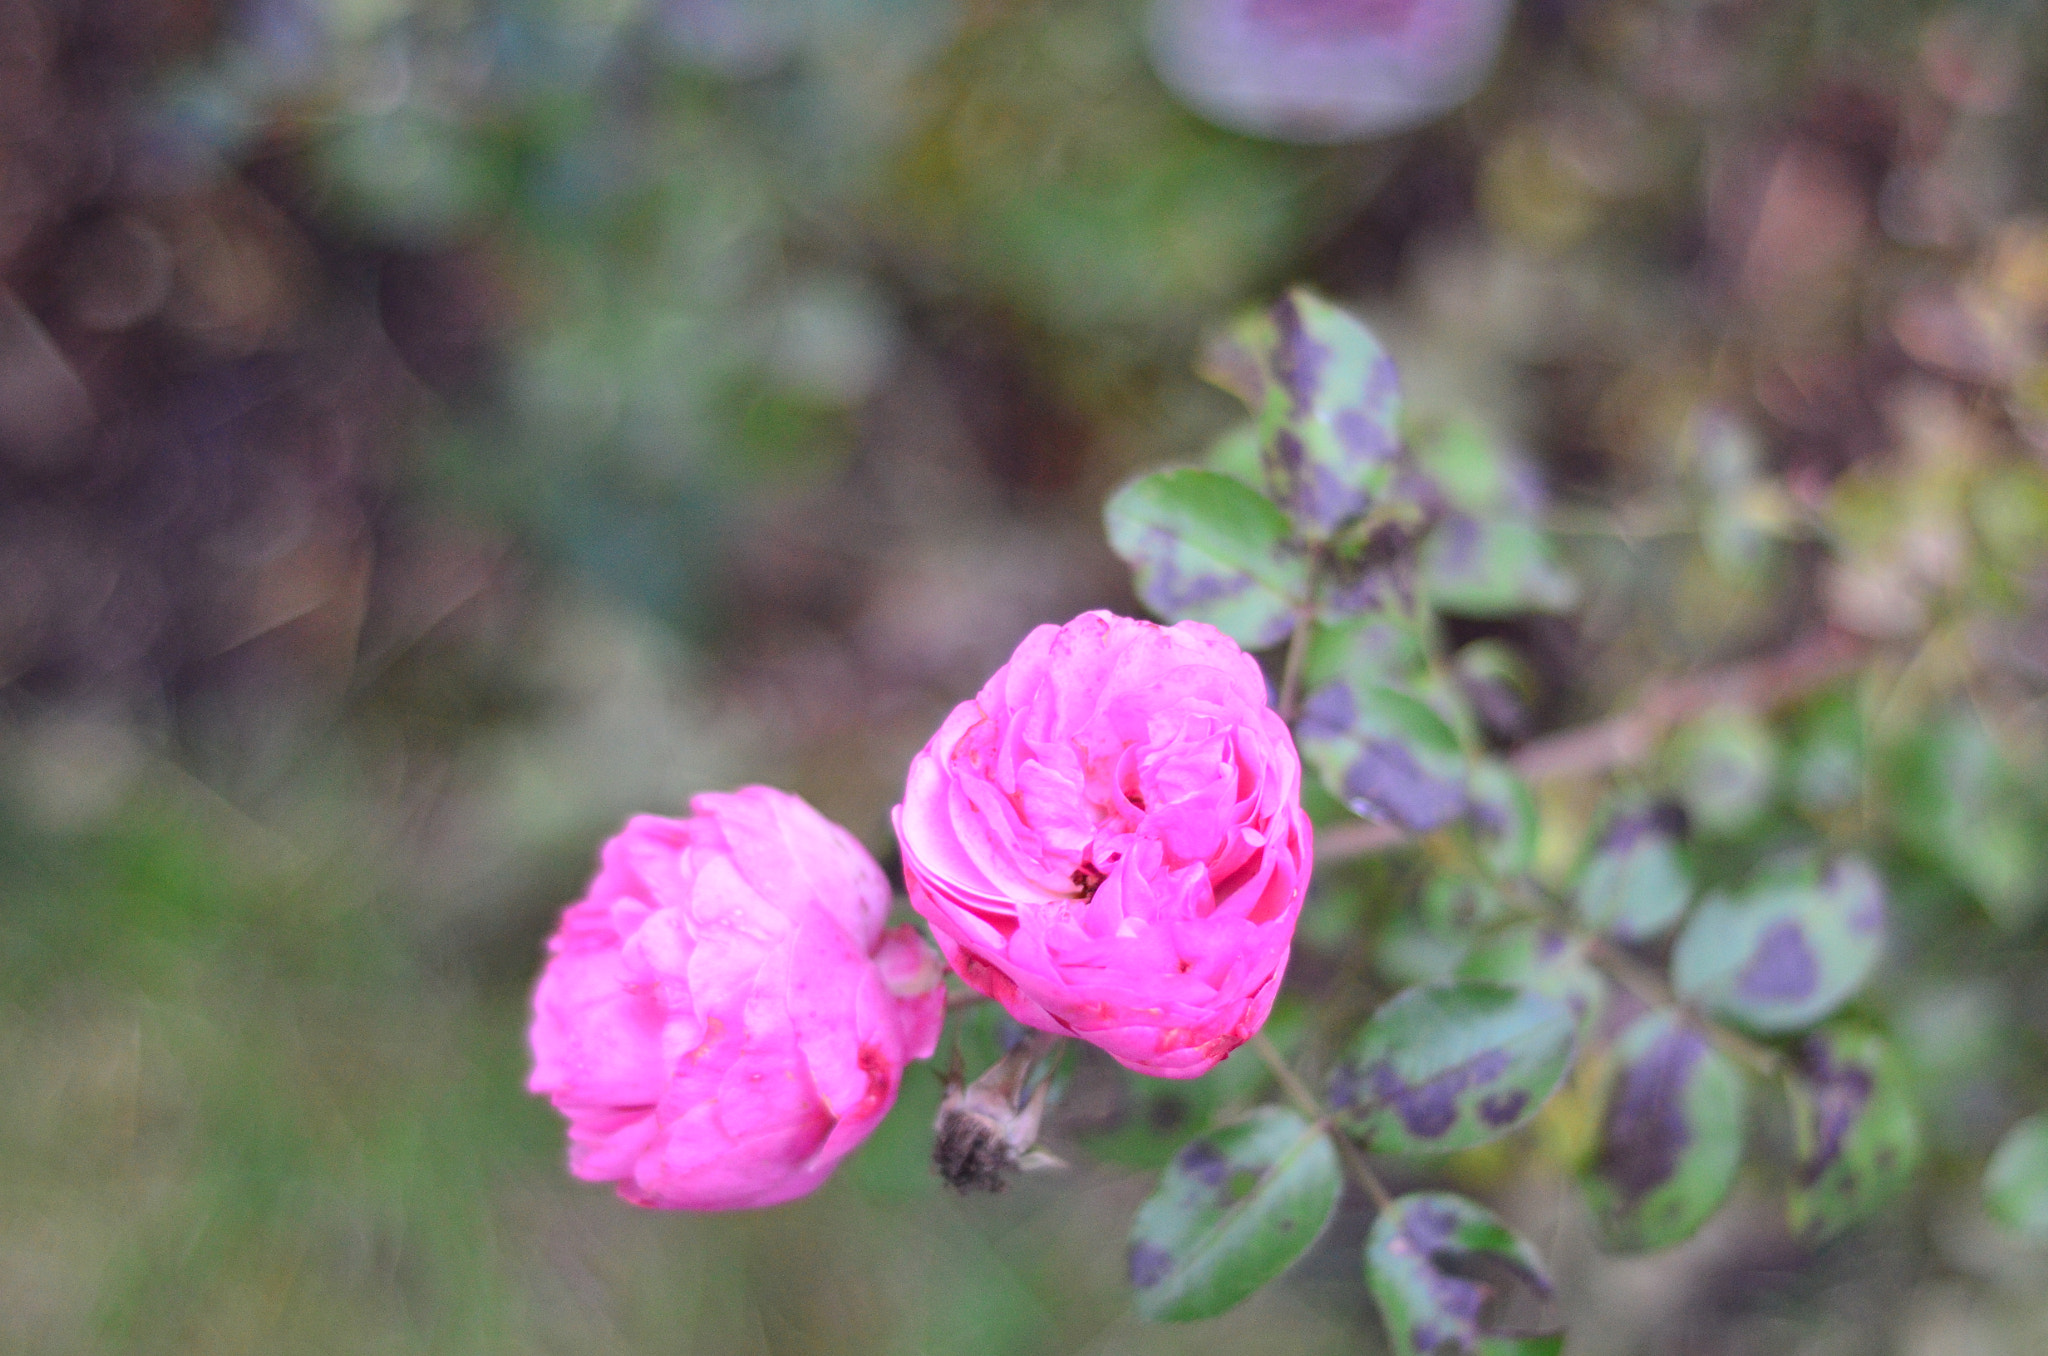 Photograph Roses by The Oal on 500px